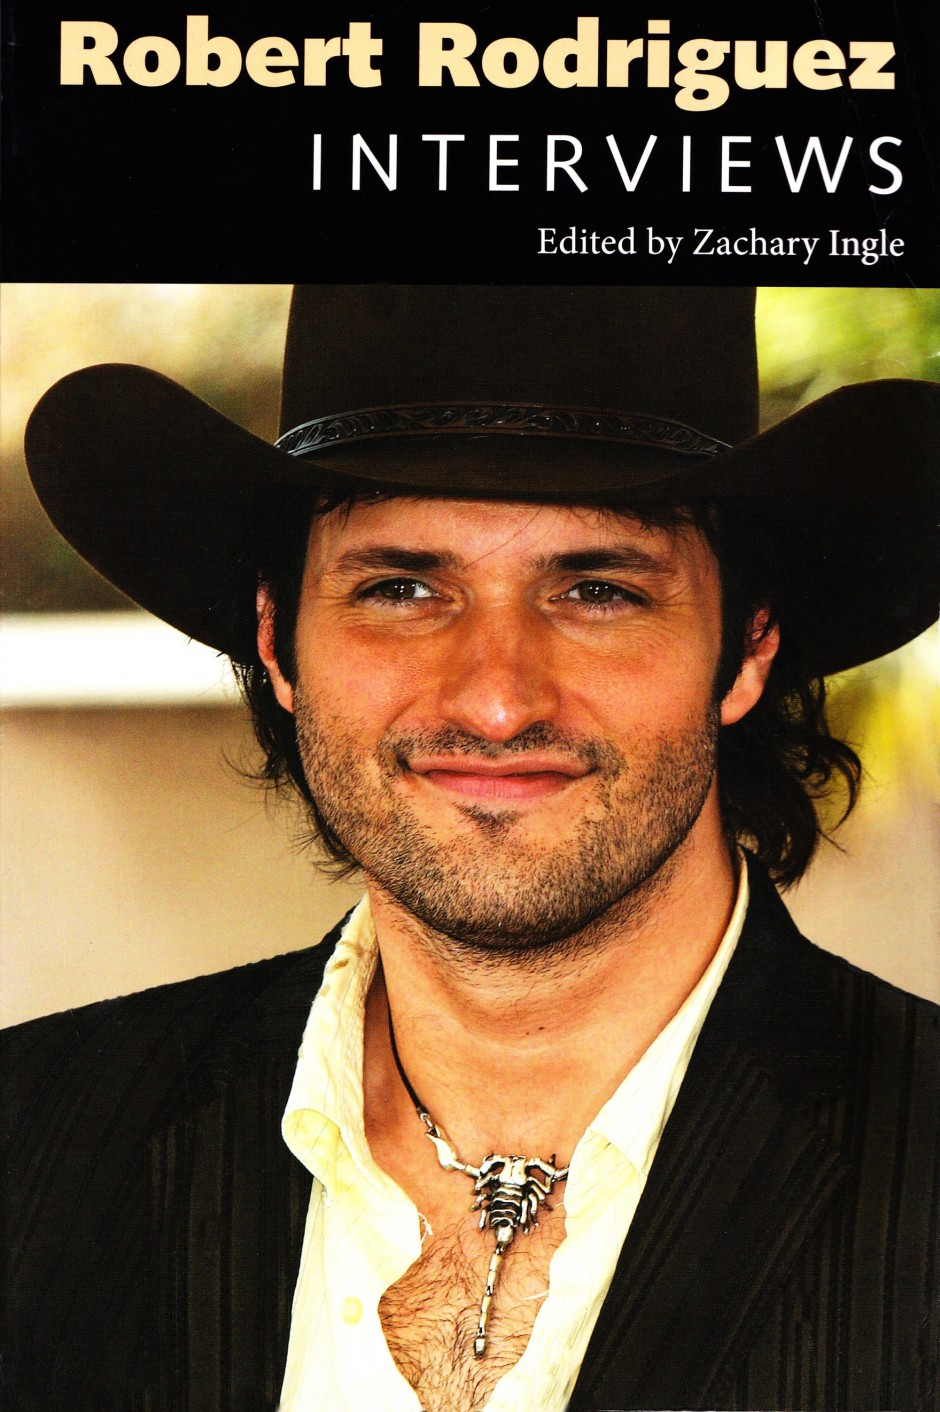 Robert Rodriguez Interviews front cover